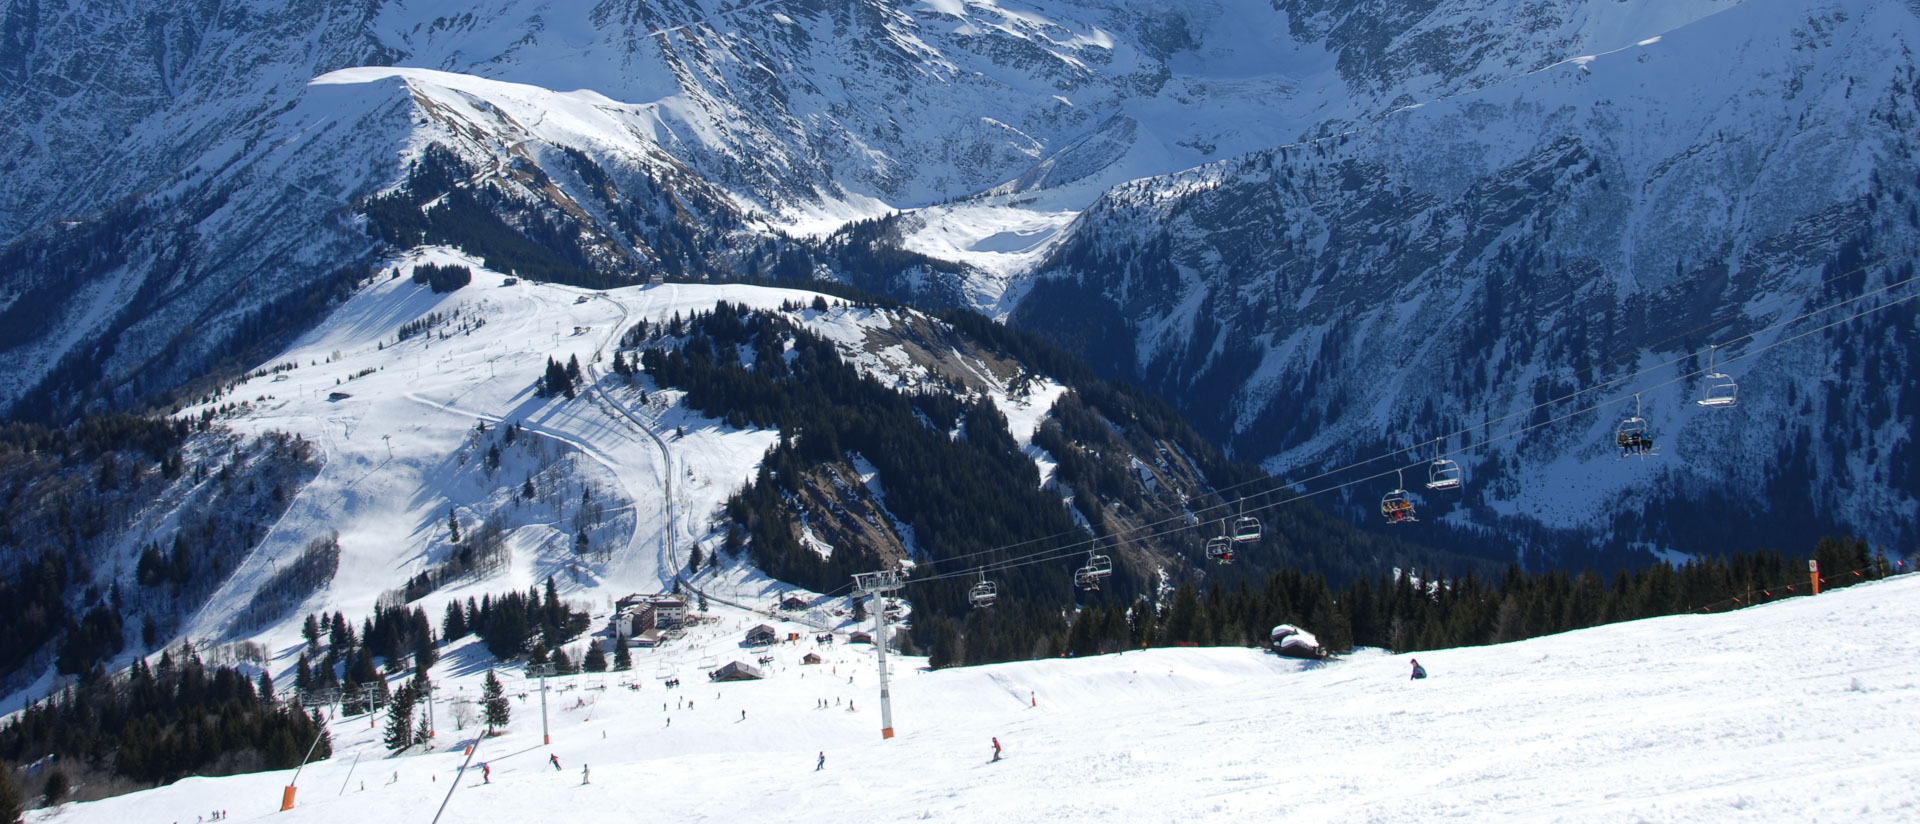 Skiers enjoy intermediate ski runs in Les Houches